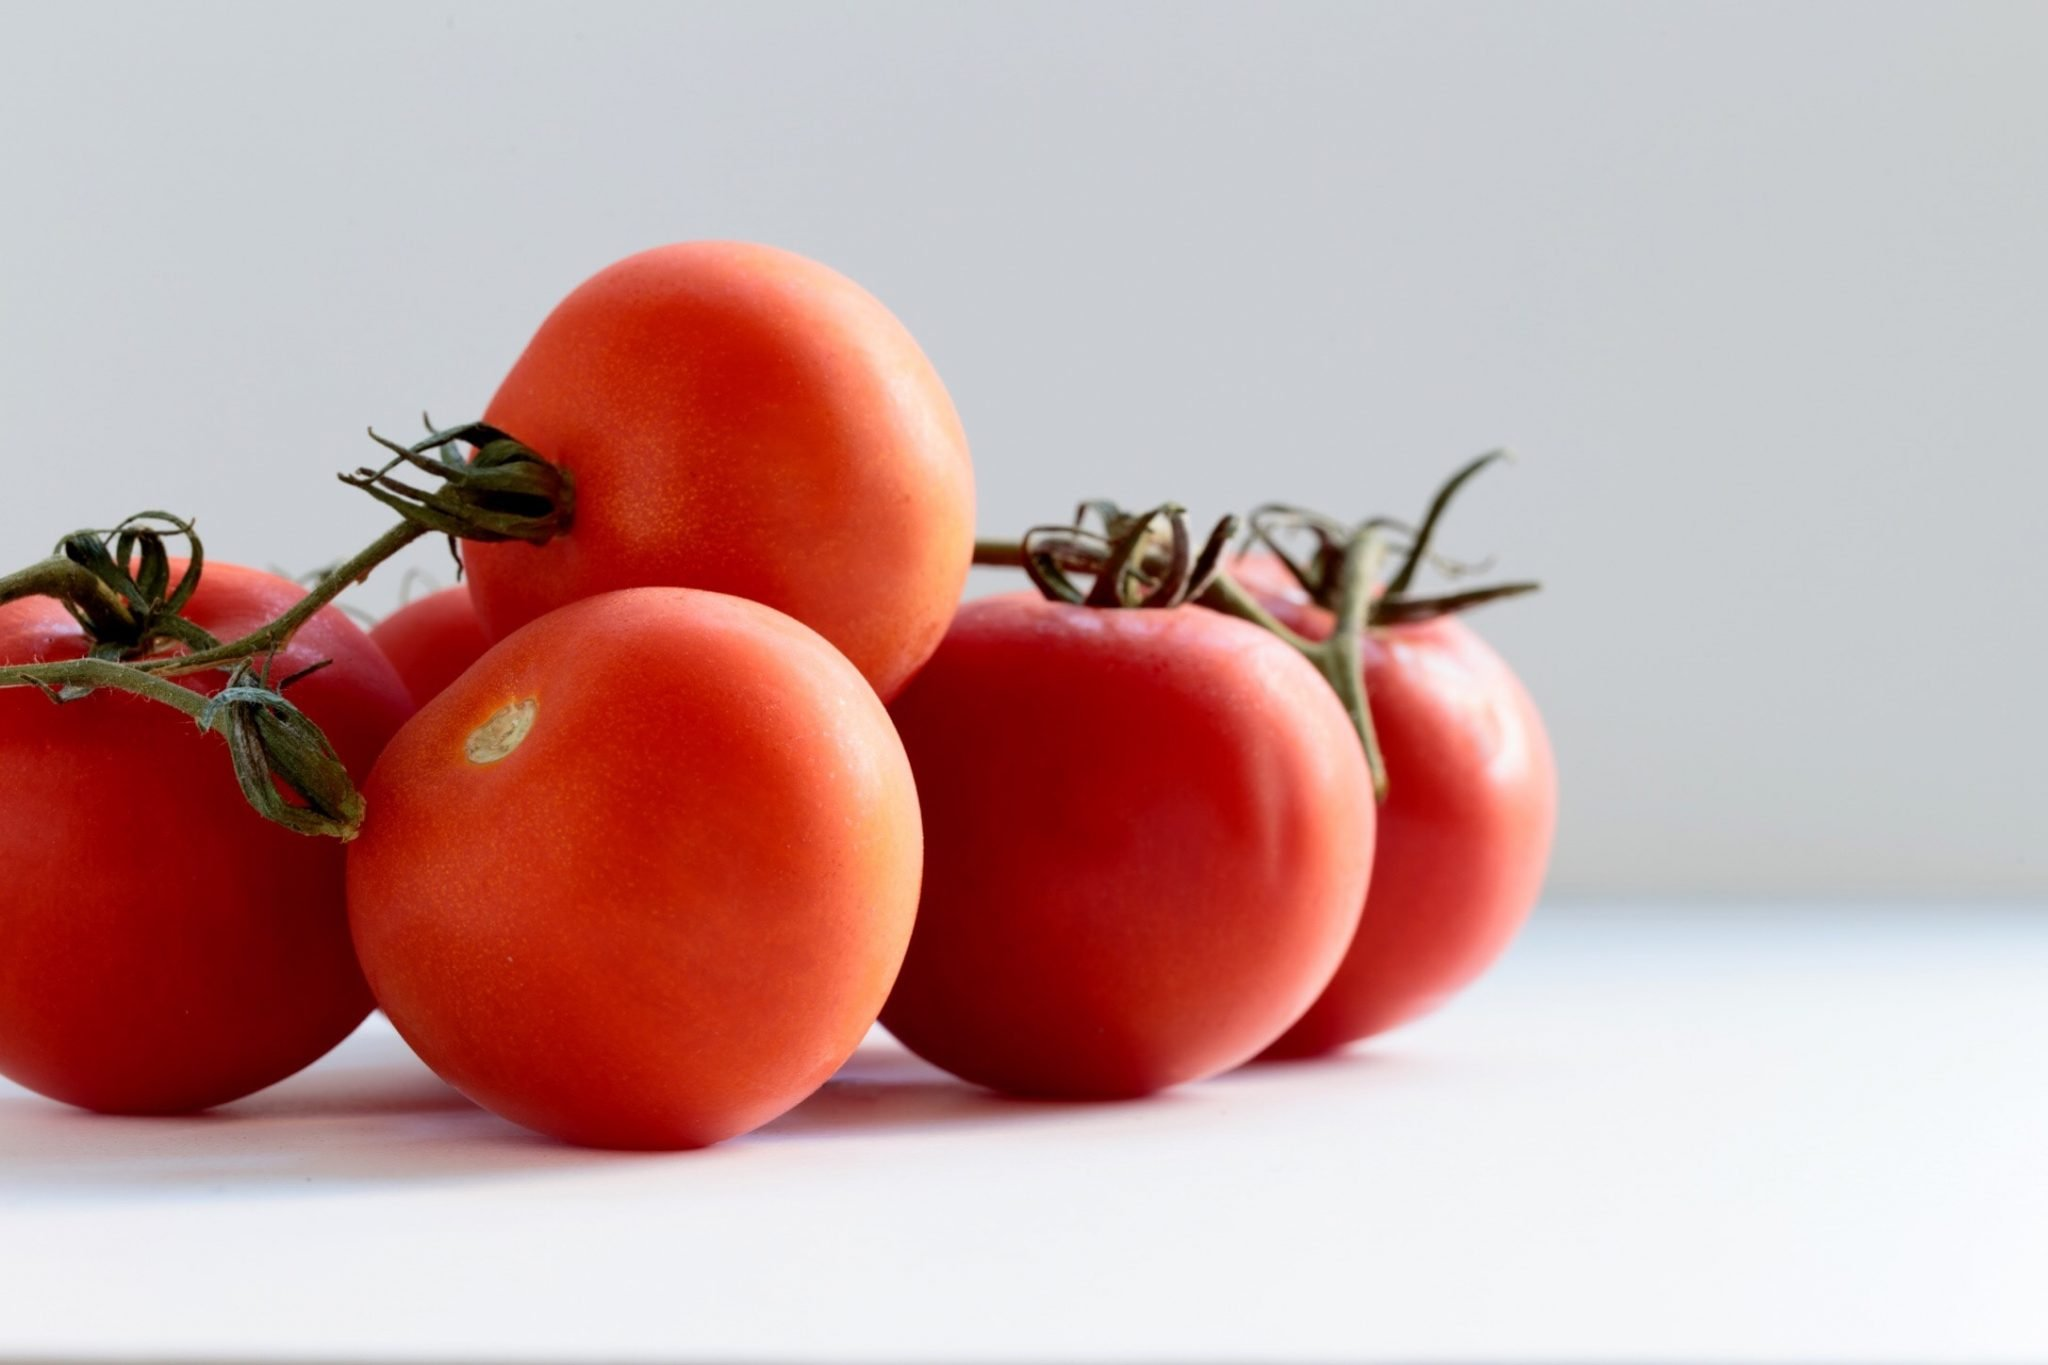 Cooking doesn't reduce nutritional quality of tomatoes